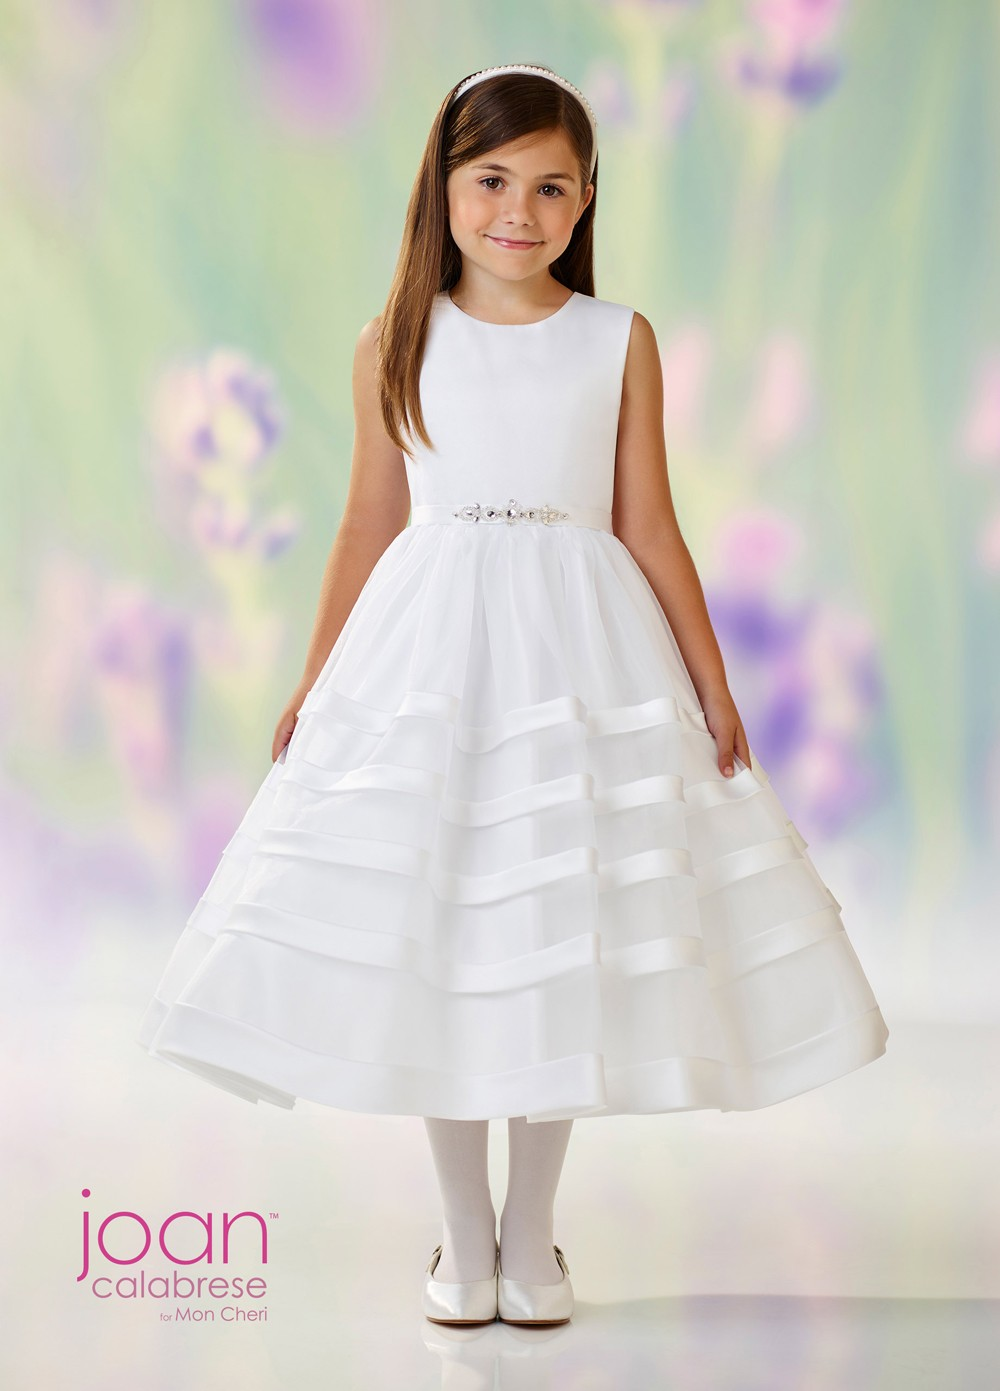 a23d8174492 Joan Calabrese 118334 Stripe Skirt First Communion Dress ...